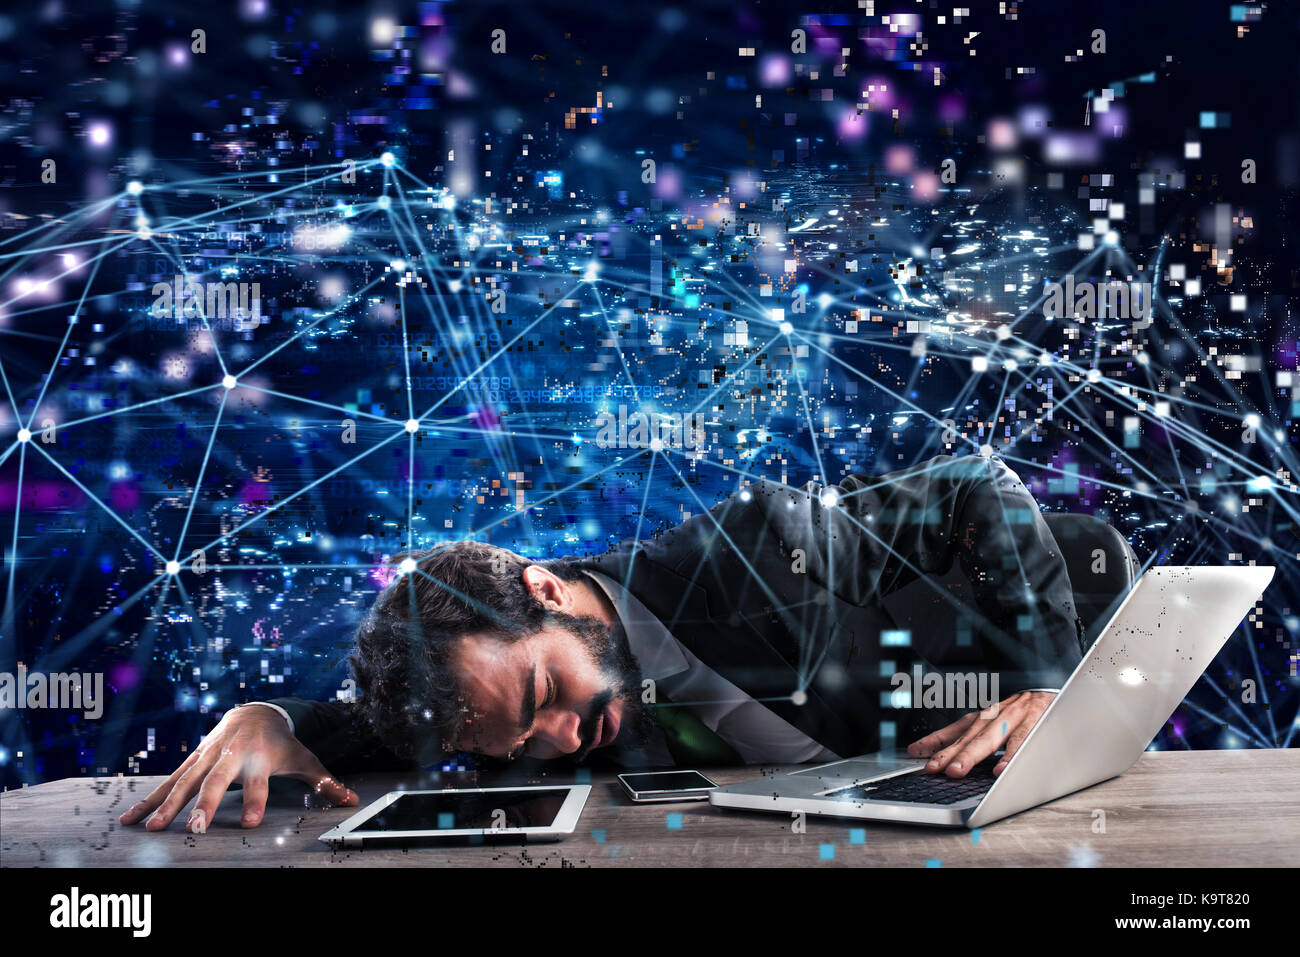 Businessman trapped in a technology network. Concept of internet addiction - Stock Image